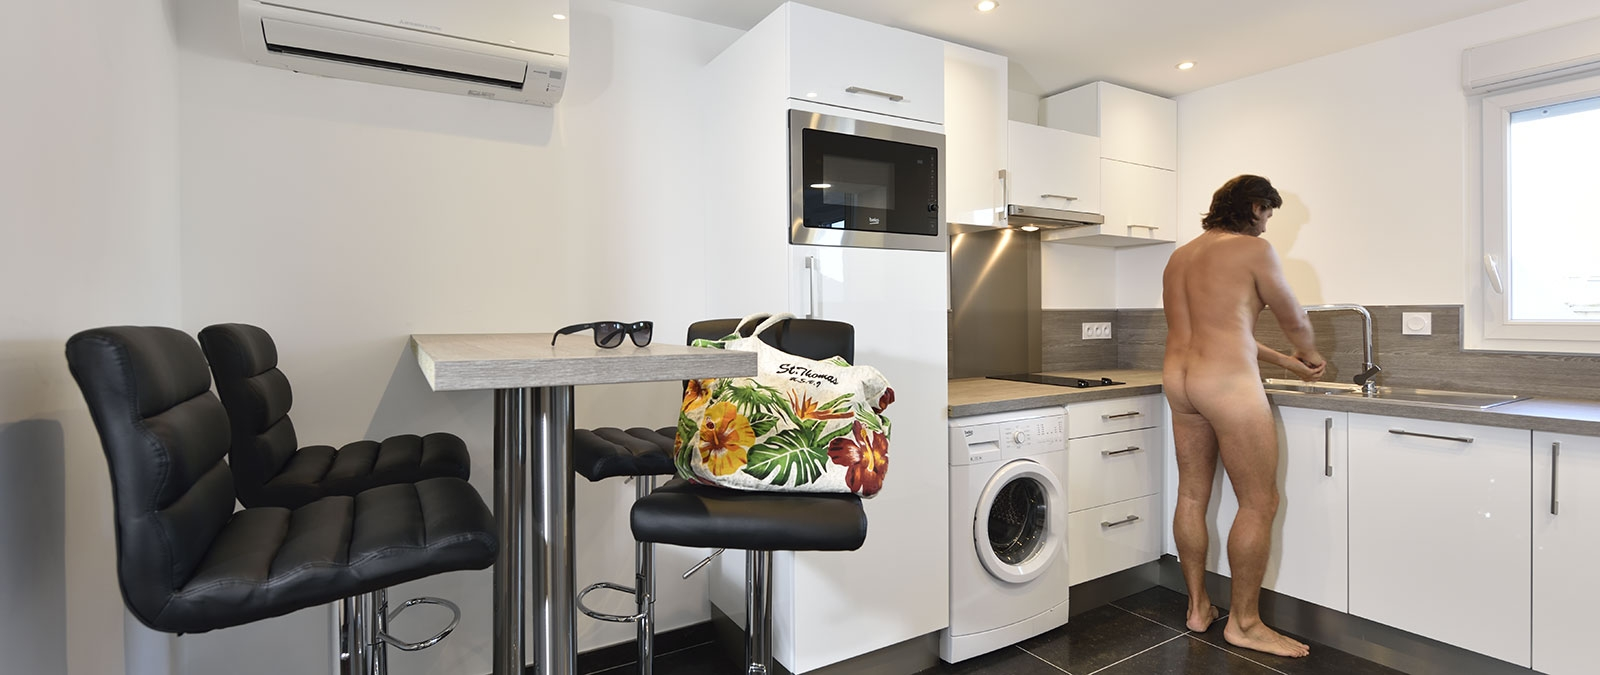 Equipped kitchen Faces naturist studio flat rental